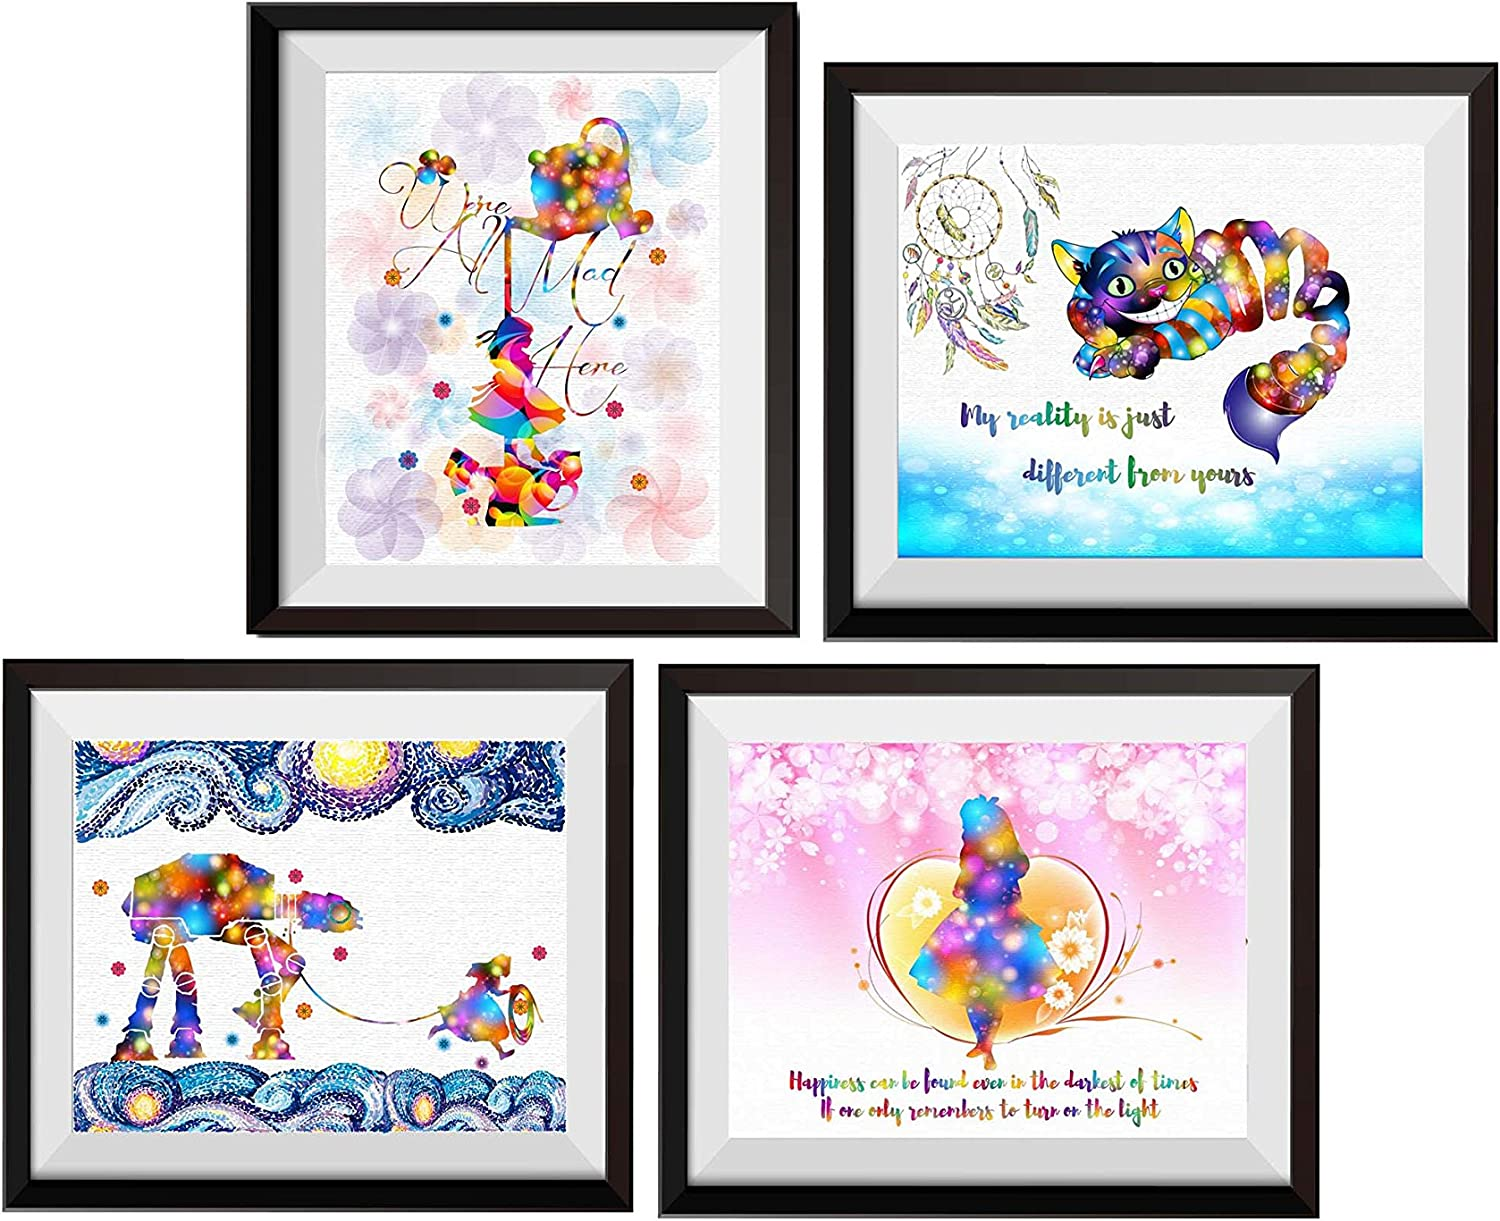 Uhomate 4 pcs Set Alice in Wonderland Cheshire Cat Alice Wonderland Abstract Art Canvas Wall Art Baby Gift Inspirational Quotes Wall Decor for Living Room Bedroom M031 (5X7)